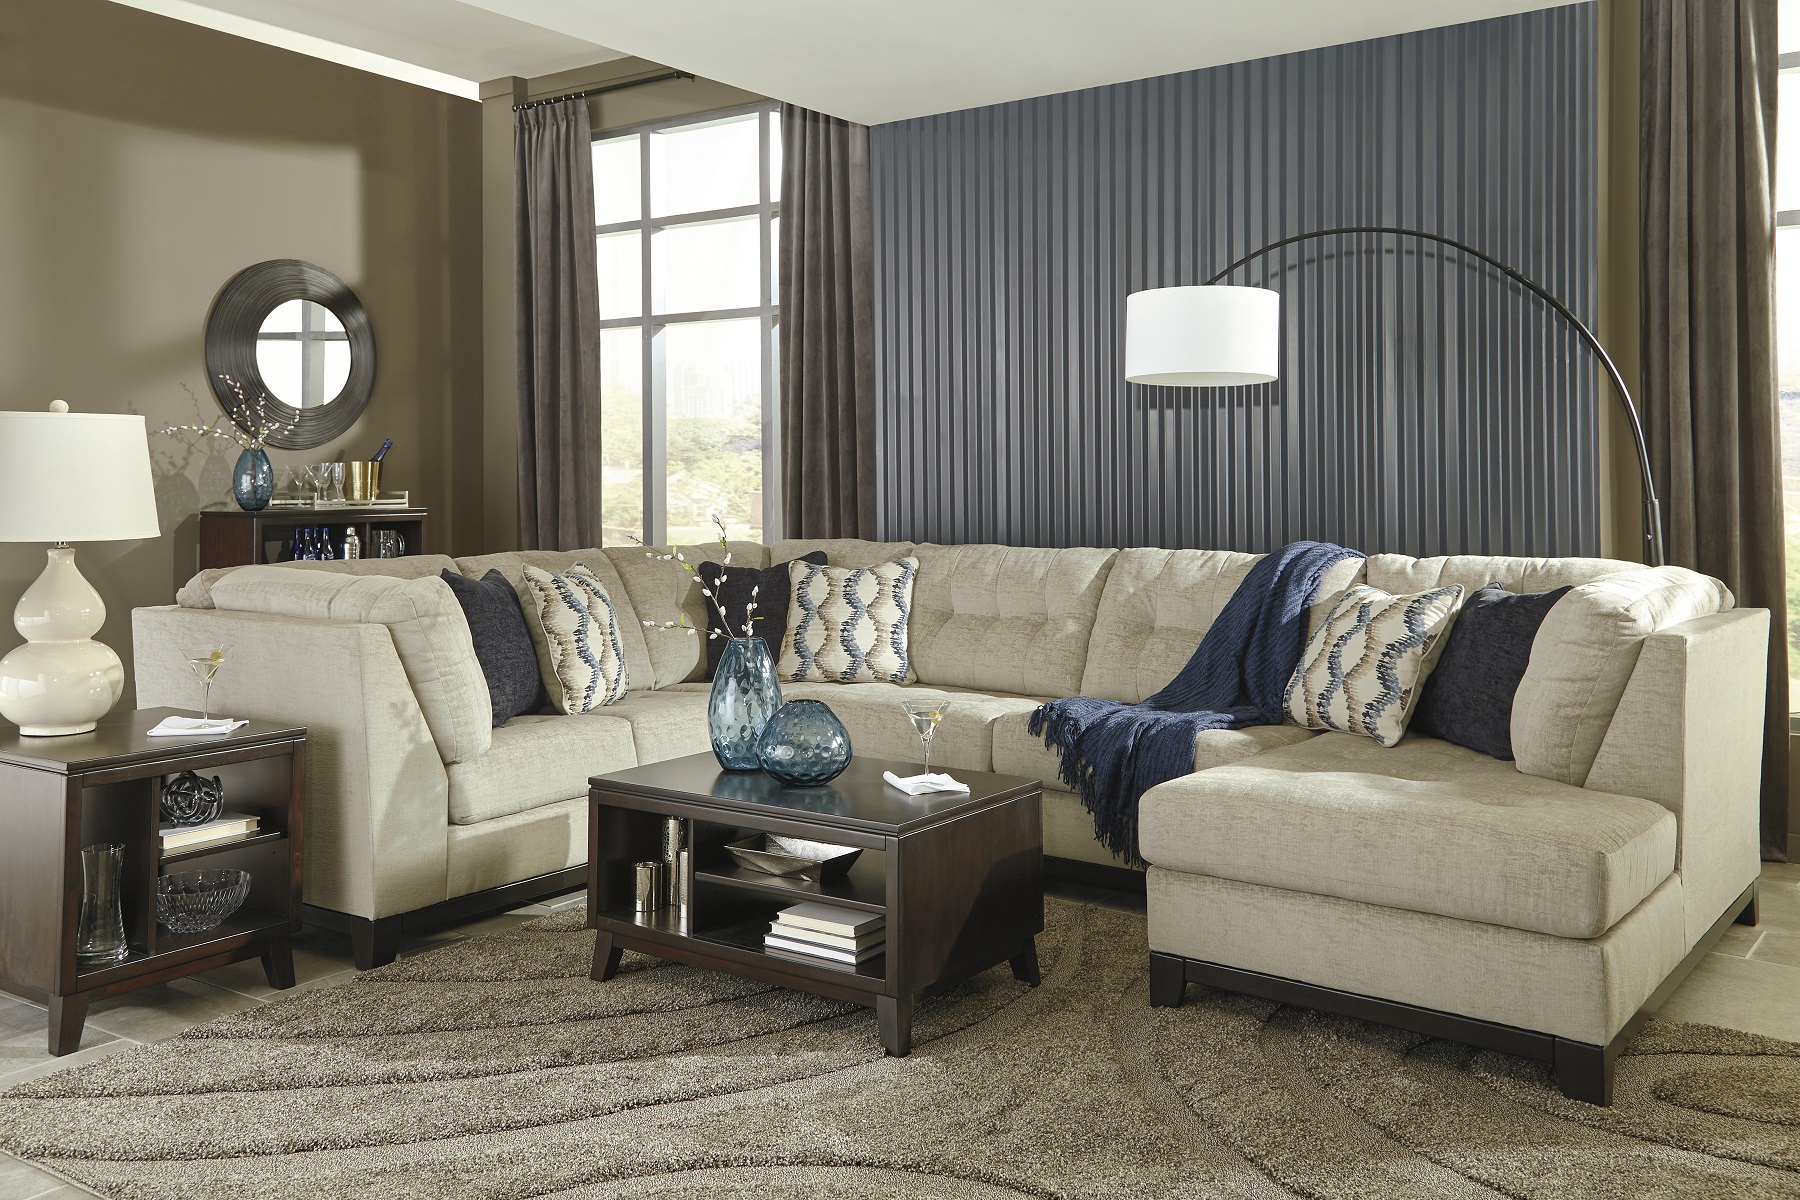 Beckendorf 15004 17 By Ashley Sectional Sofa Tufting Stone